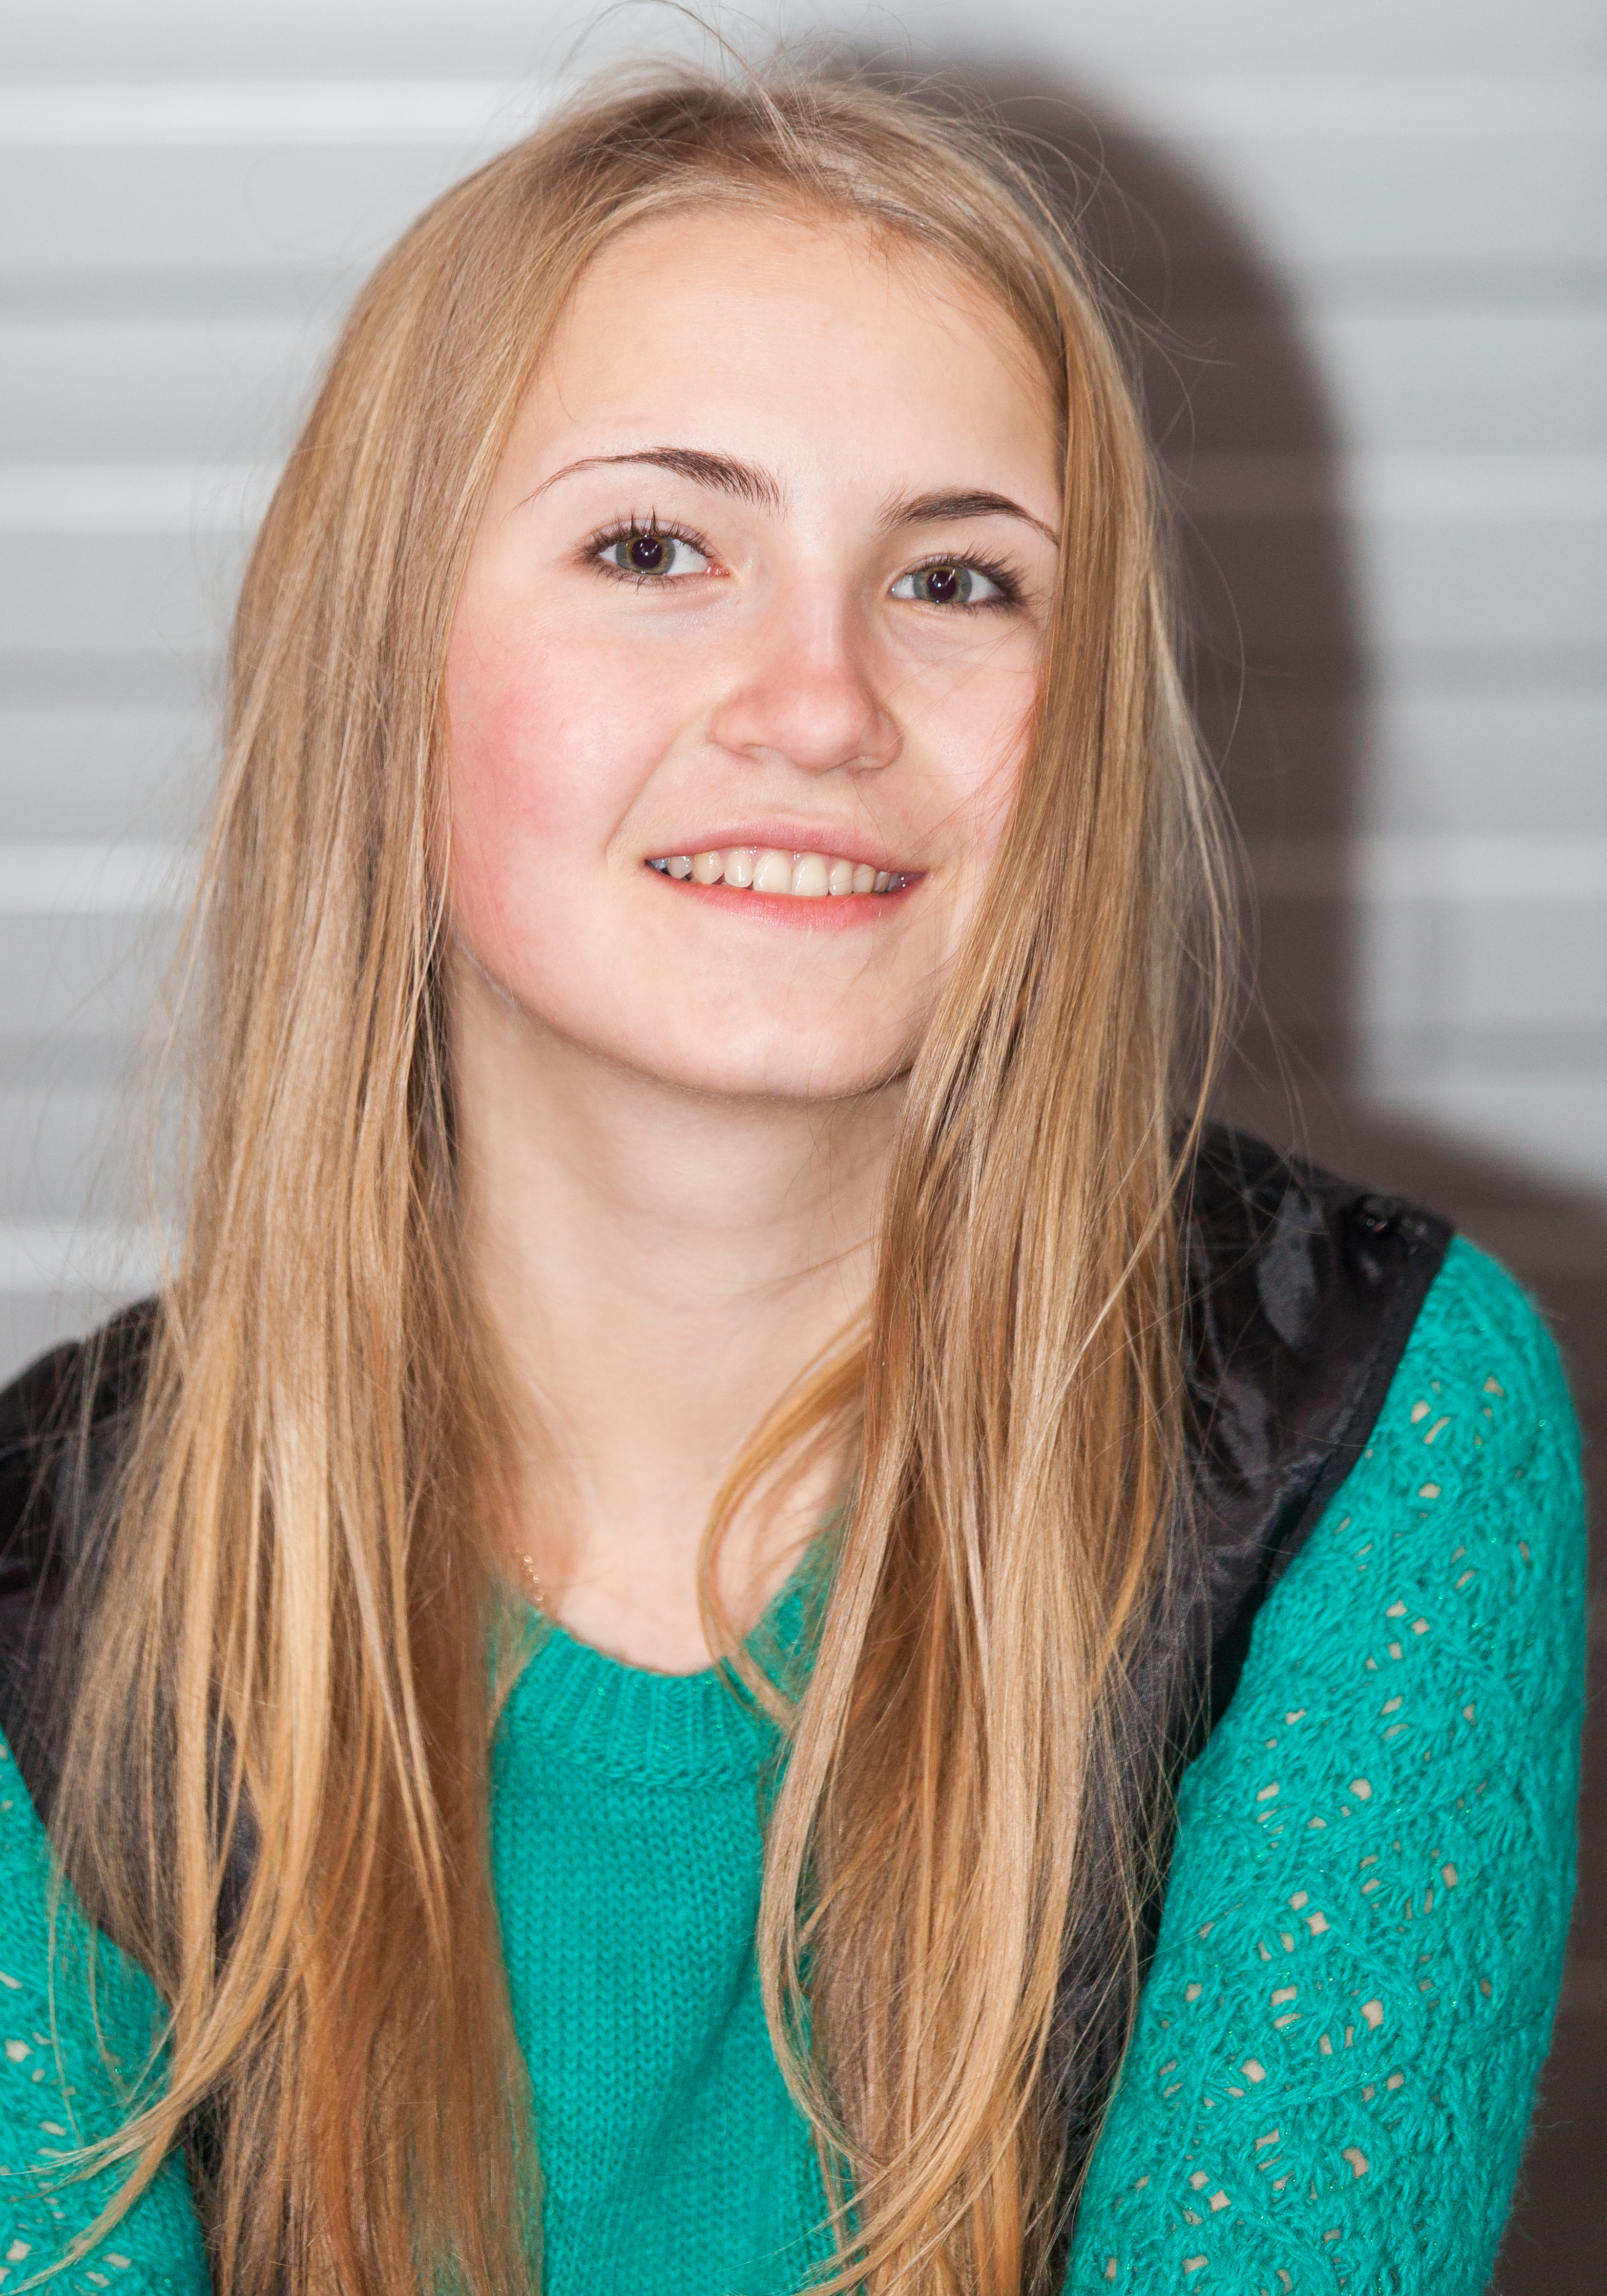 a beautiful blond Catholic girl photographed in December 2014, picture 3